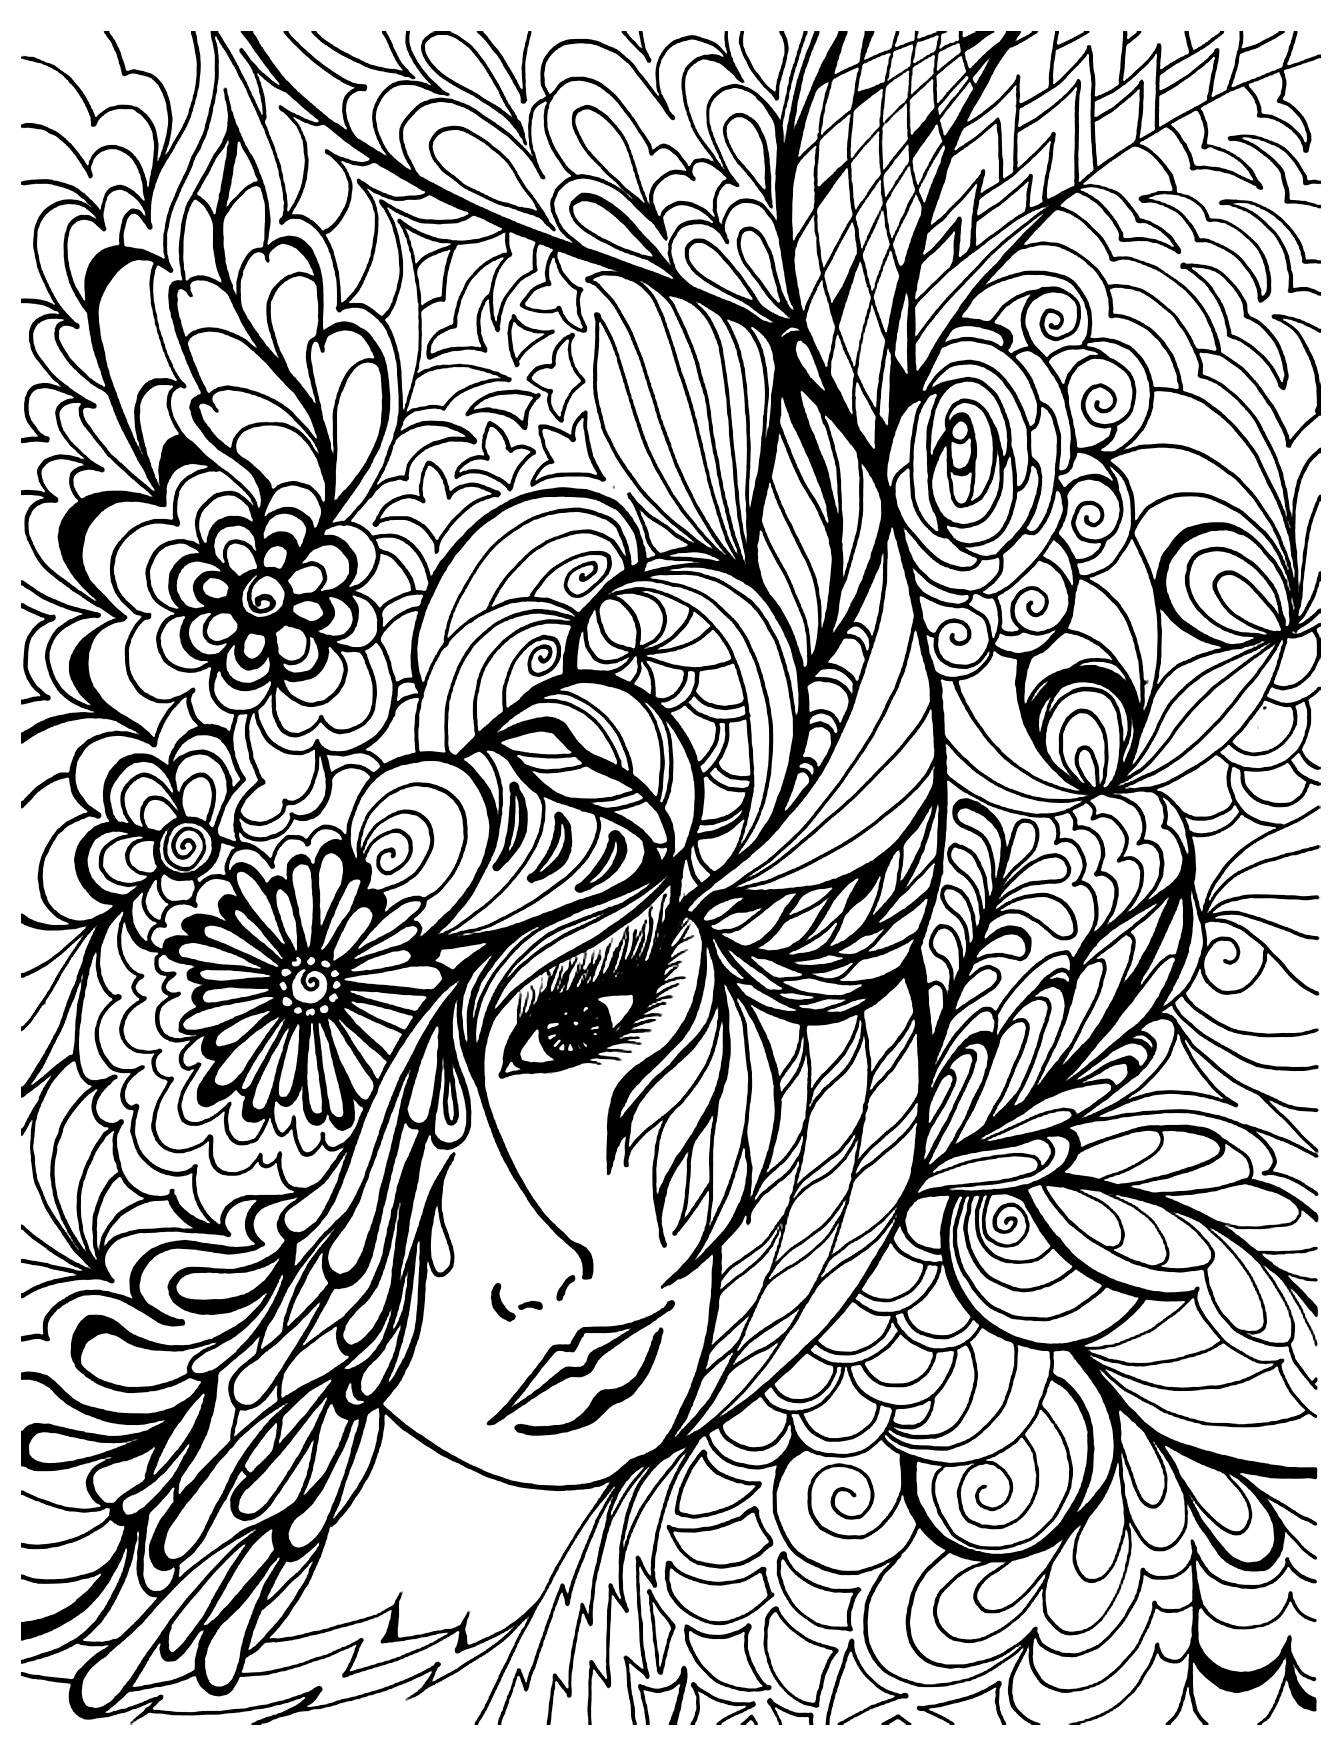 Coloriage anti stress visage - Coloriage visage ...